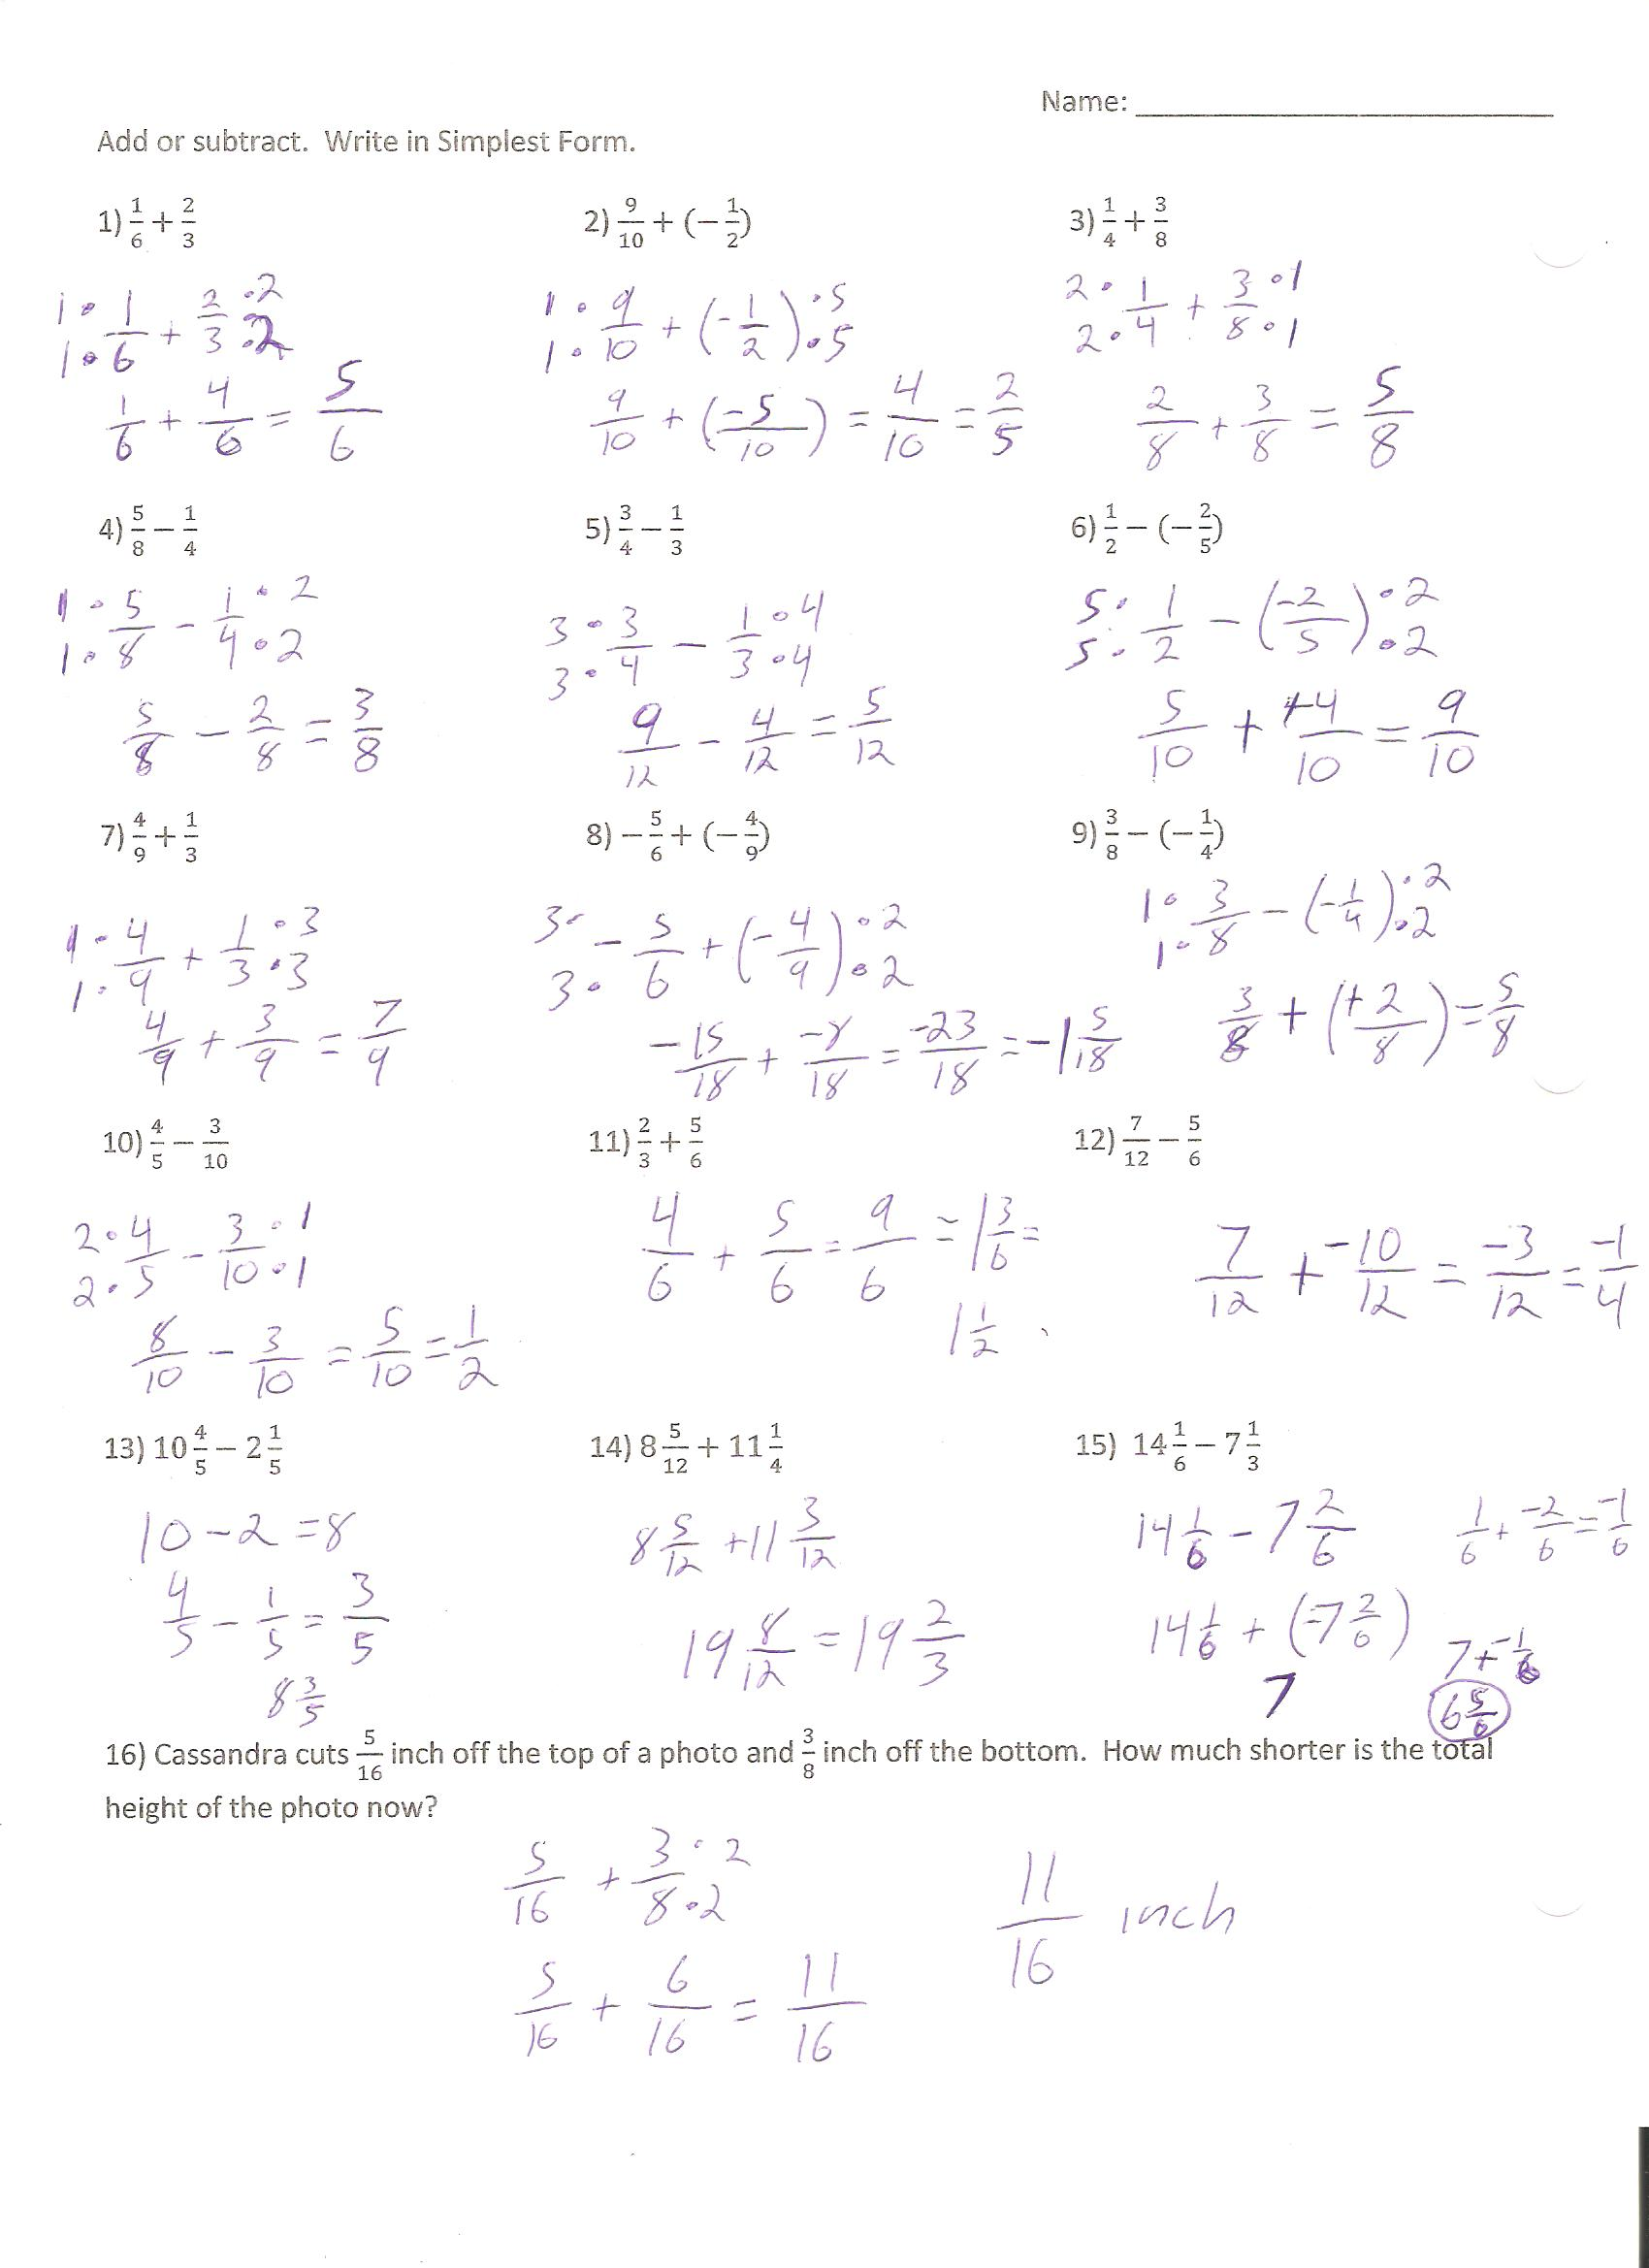 Sept 24th Adding And Subtracting Fractions Page 2